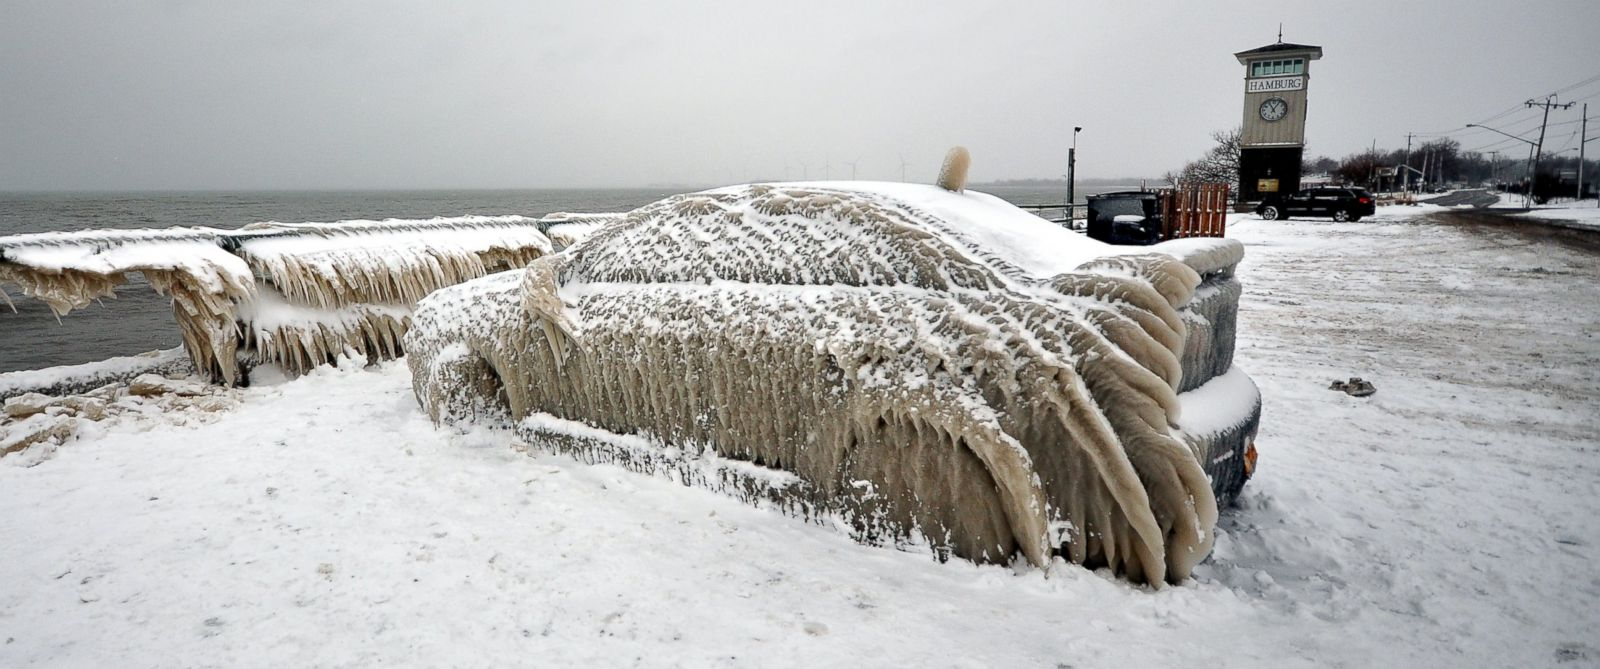 Car Frozen In Ice New York